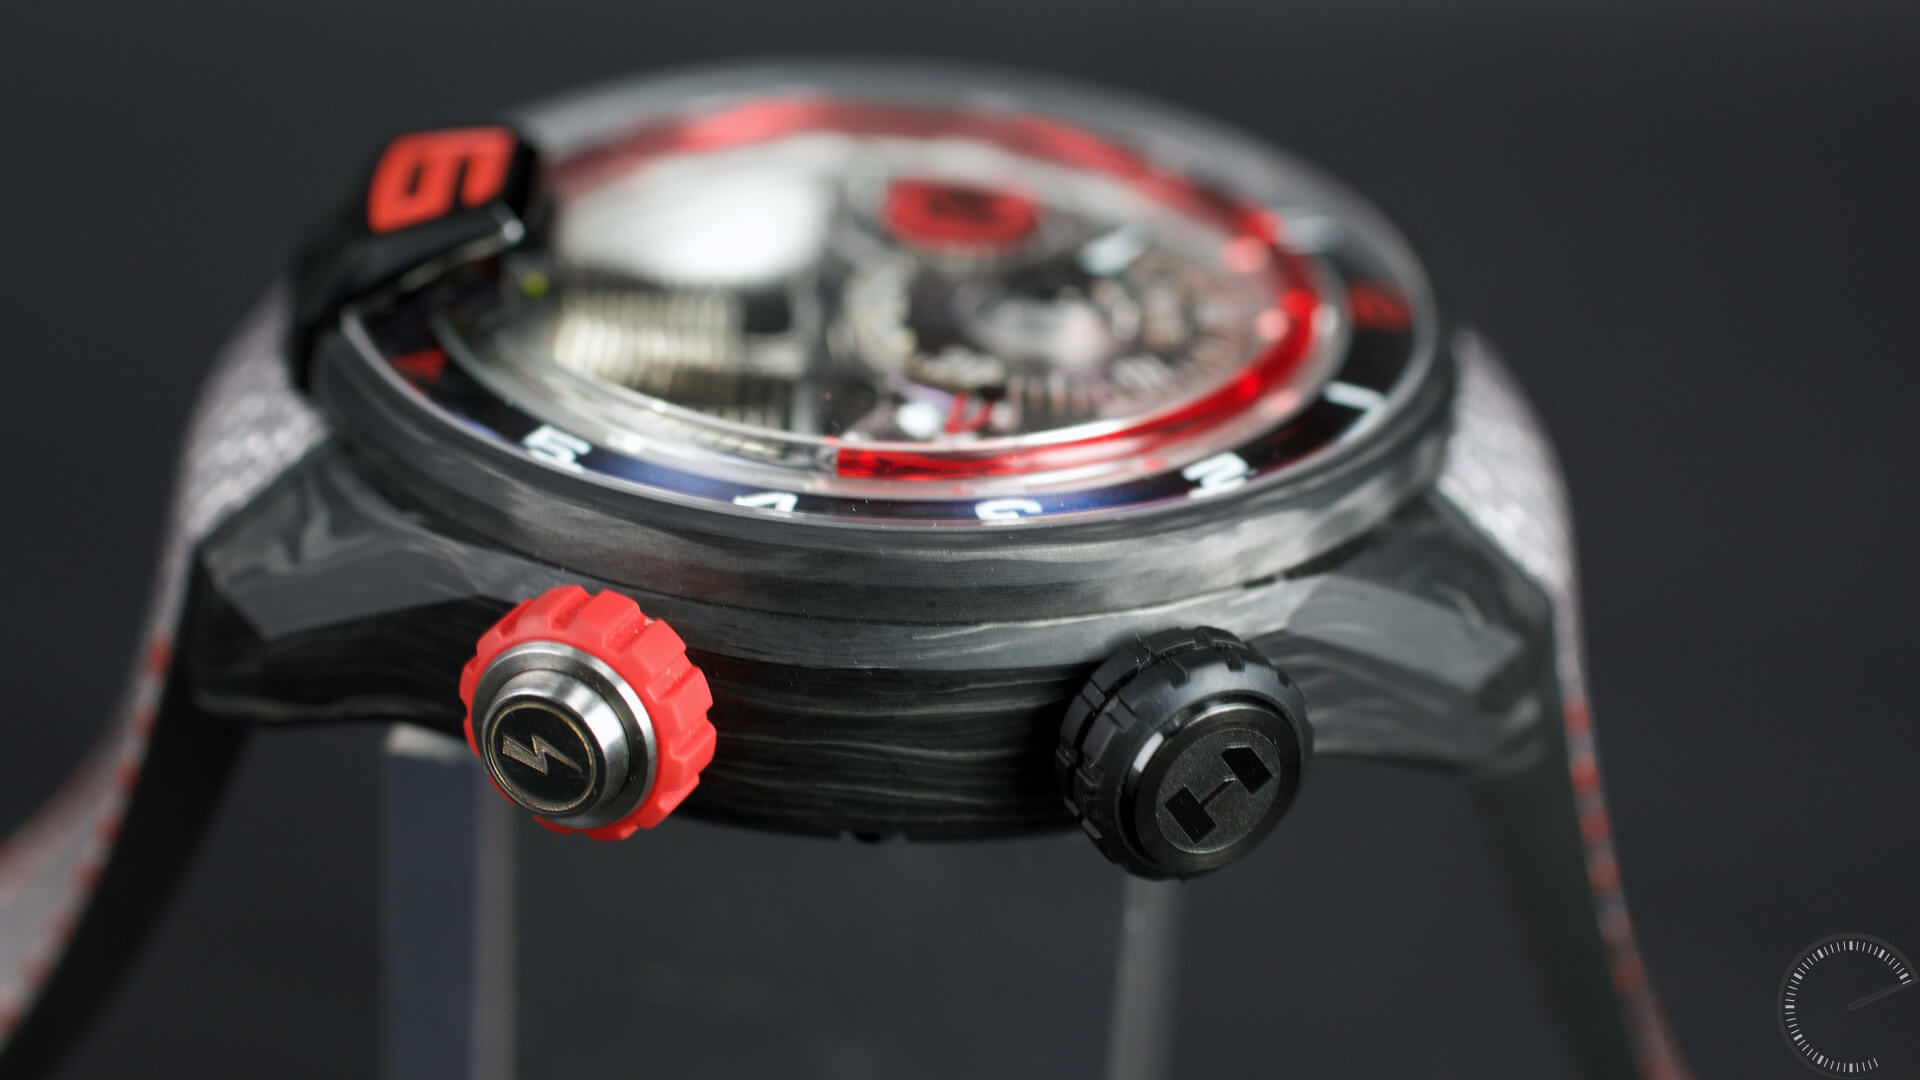 HYT_A4_Alinghi_side - ESCAPEMENT MAGAZINE by Angus Davies